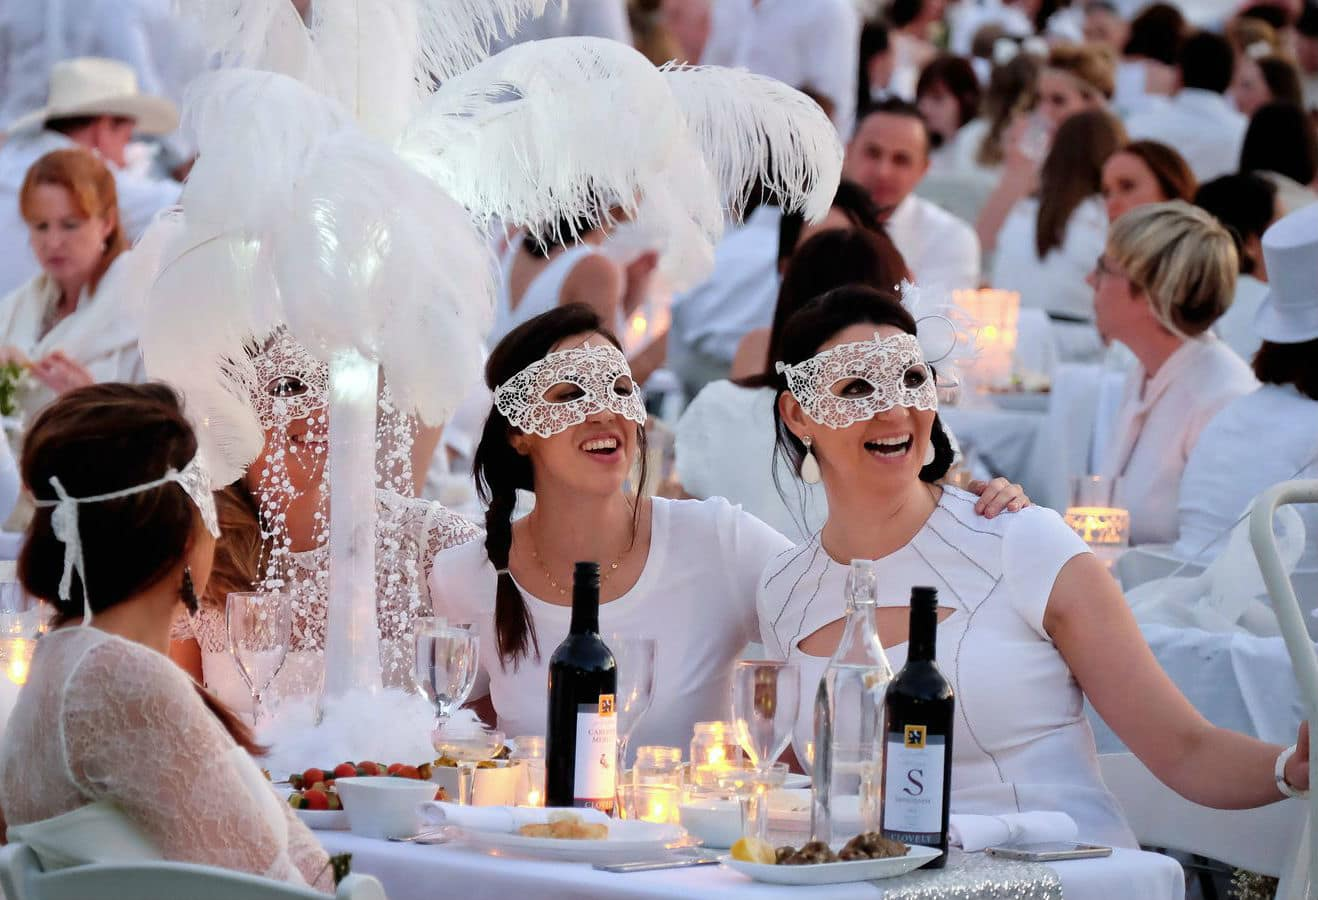 Westwing, Dîner en Blanc, Outdoor, Parigi, Westwing, Trend